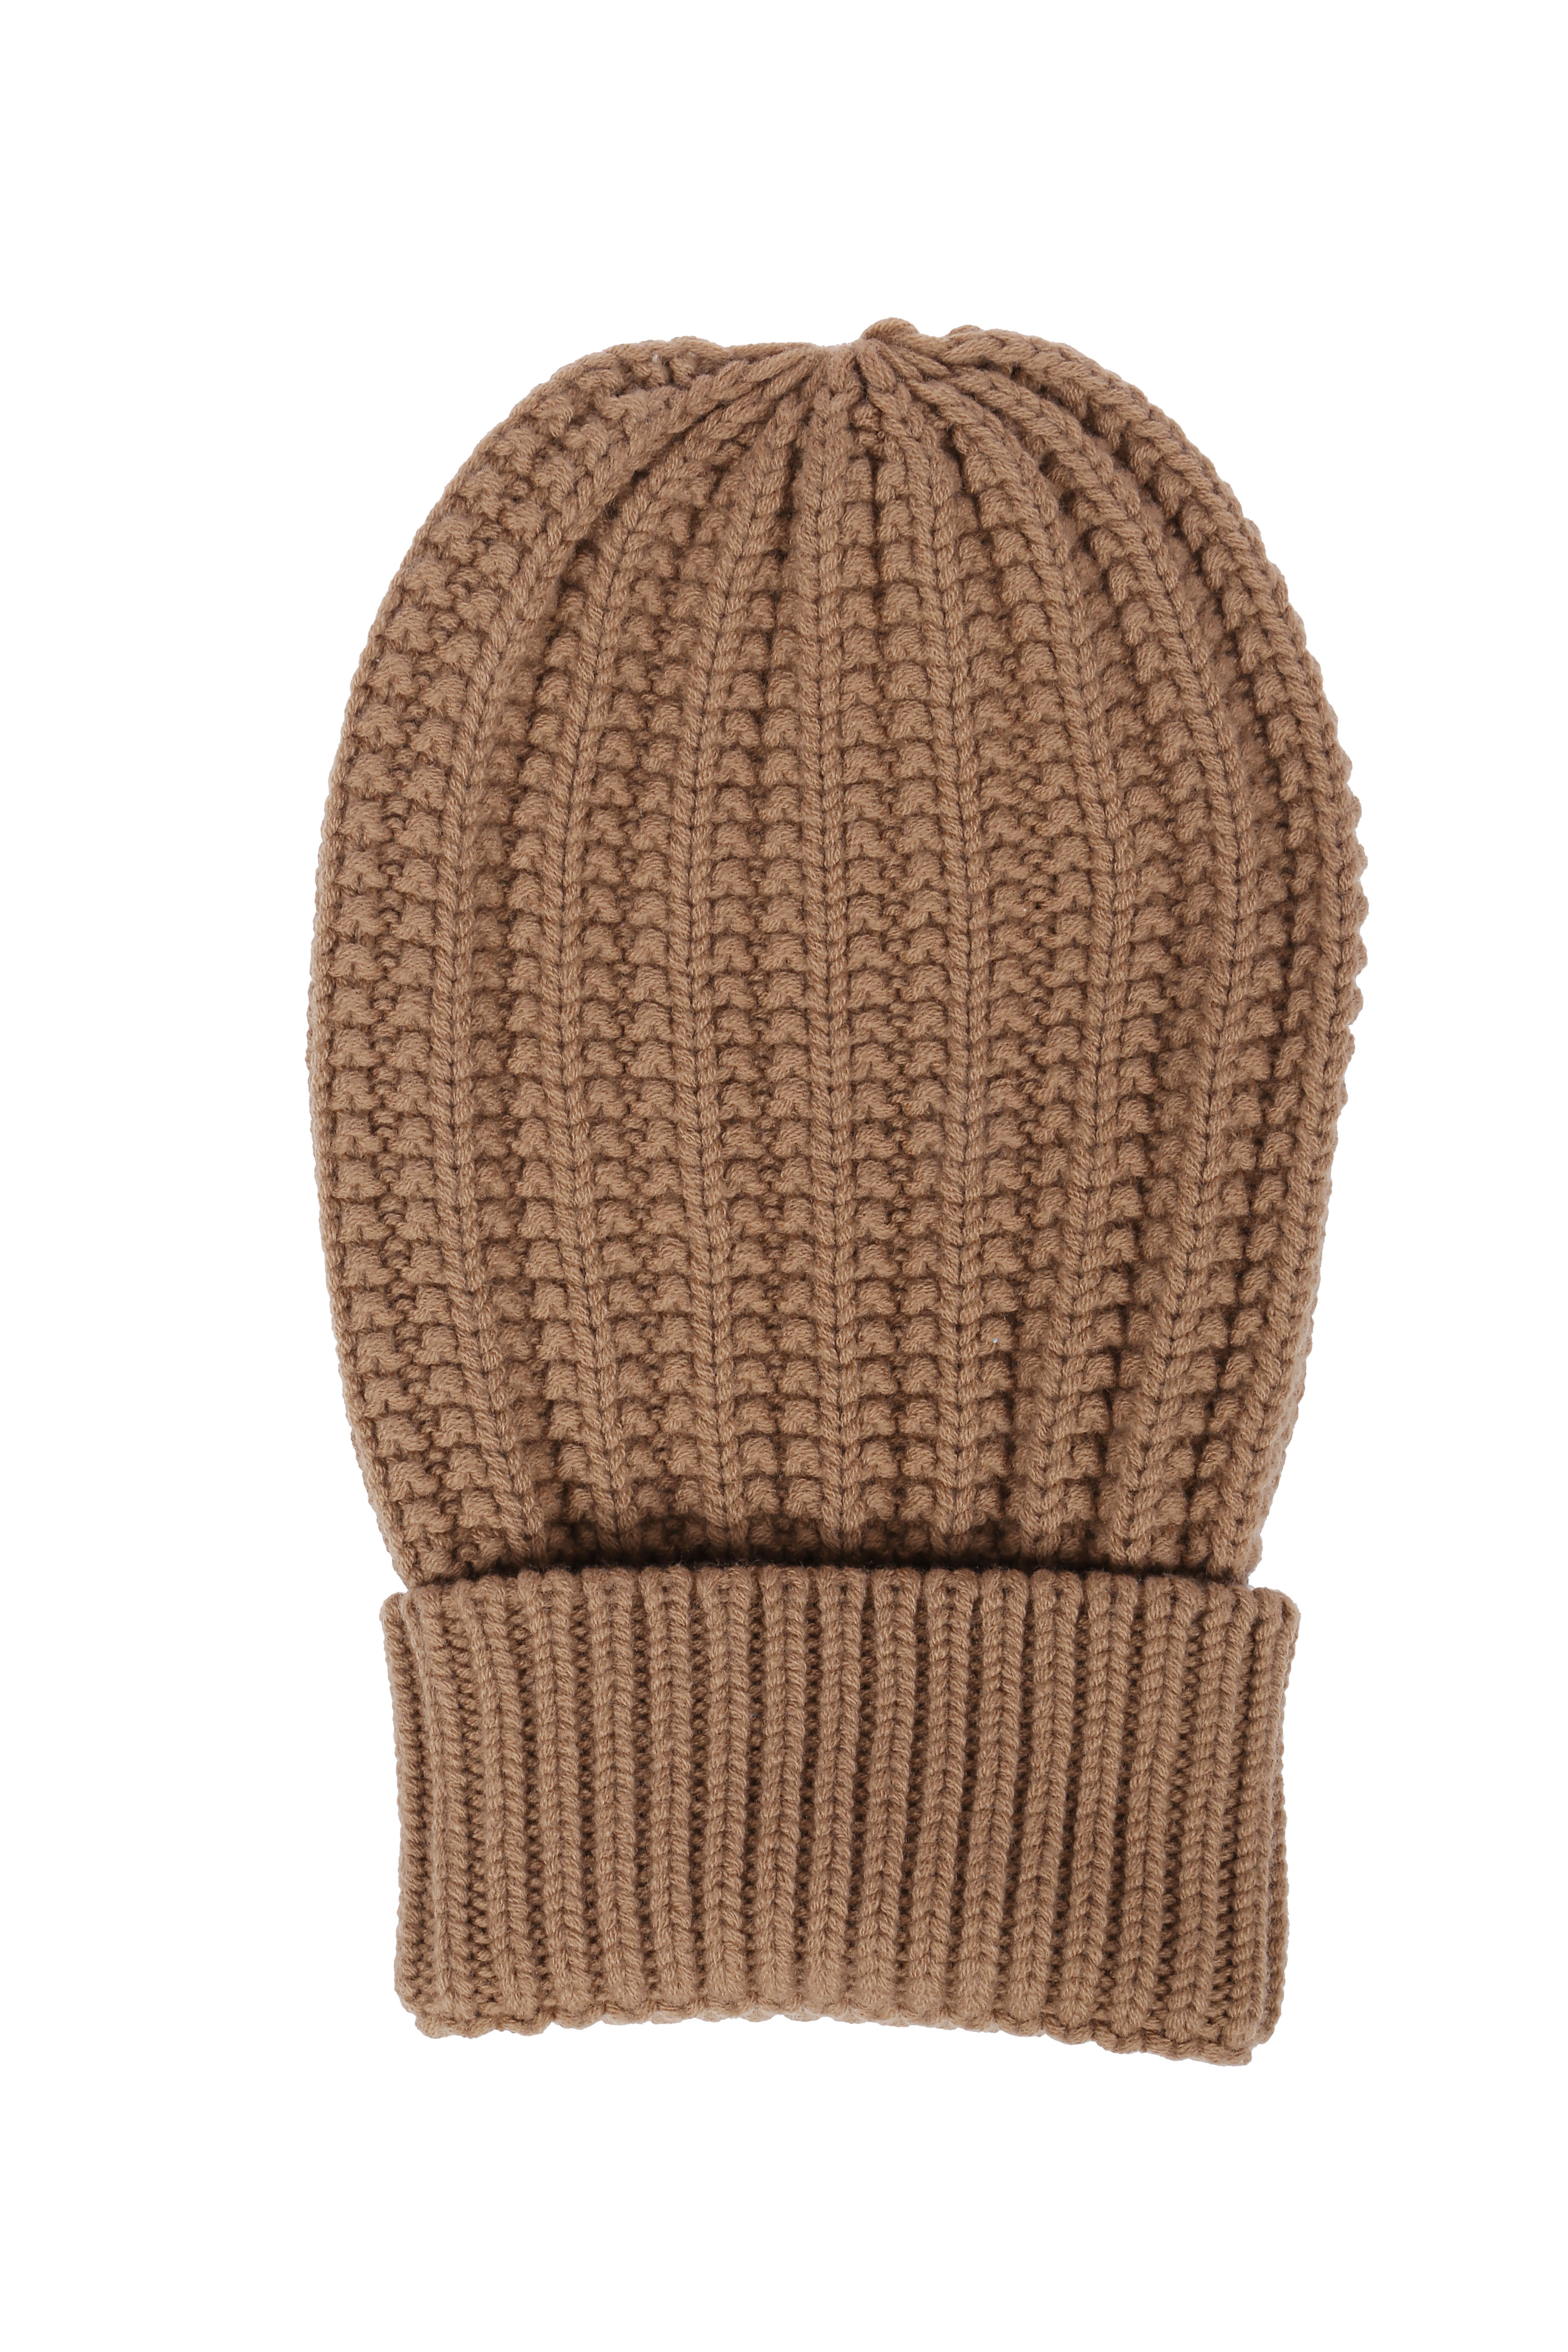 brown wool cable-knit beanie hat ELEVENTY |  | B76CLPB01-MAG0B00204